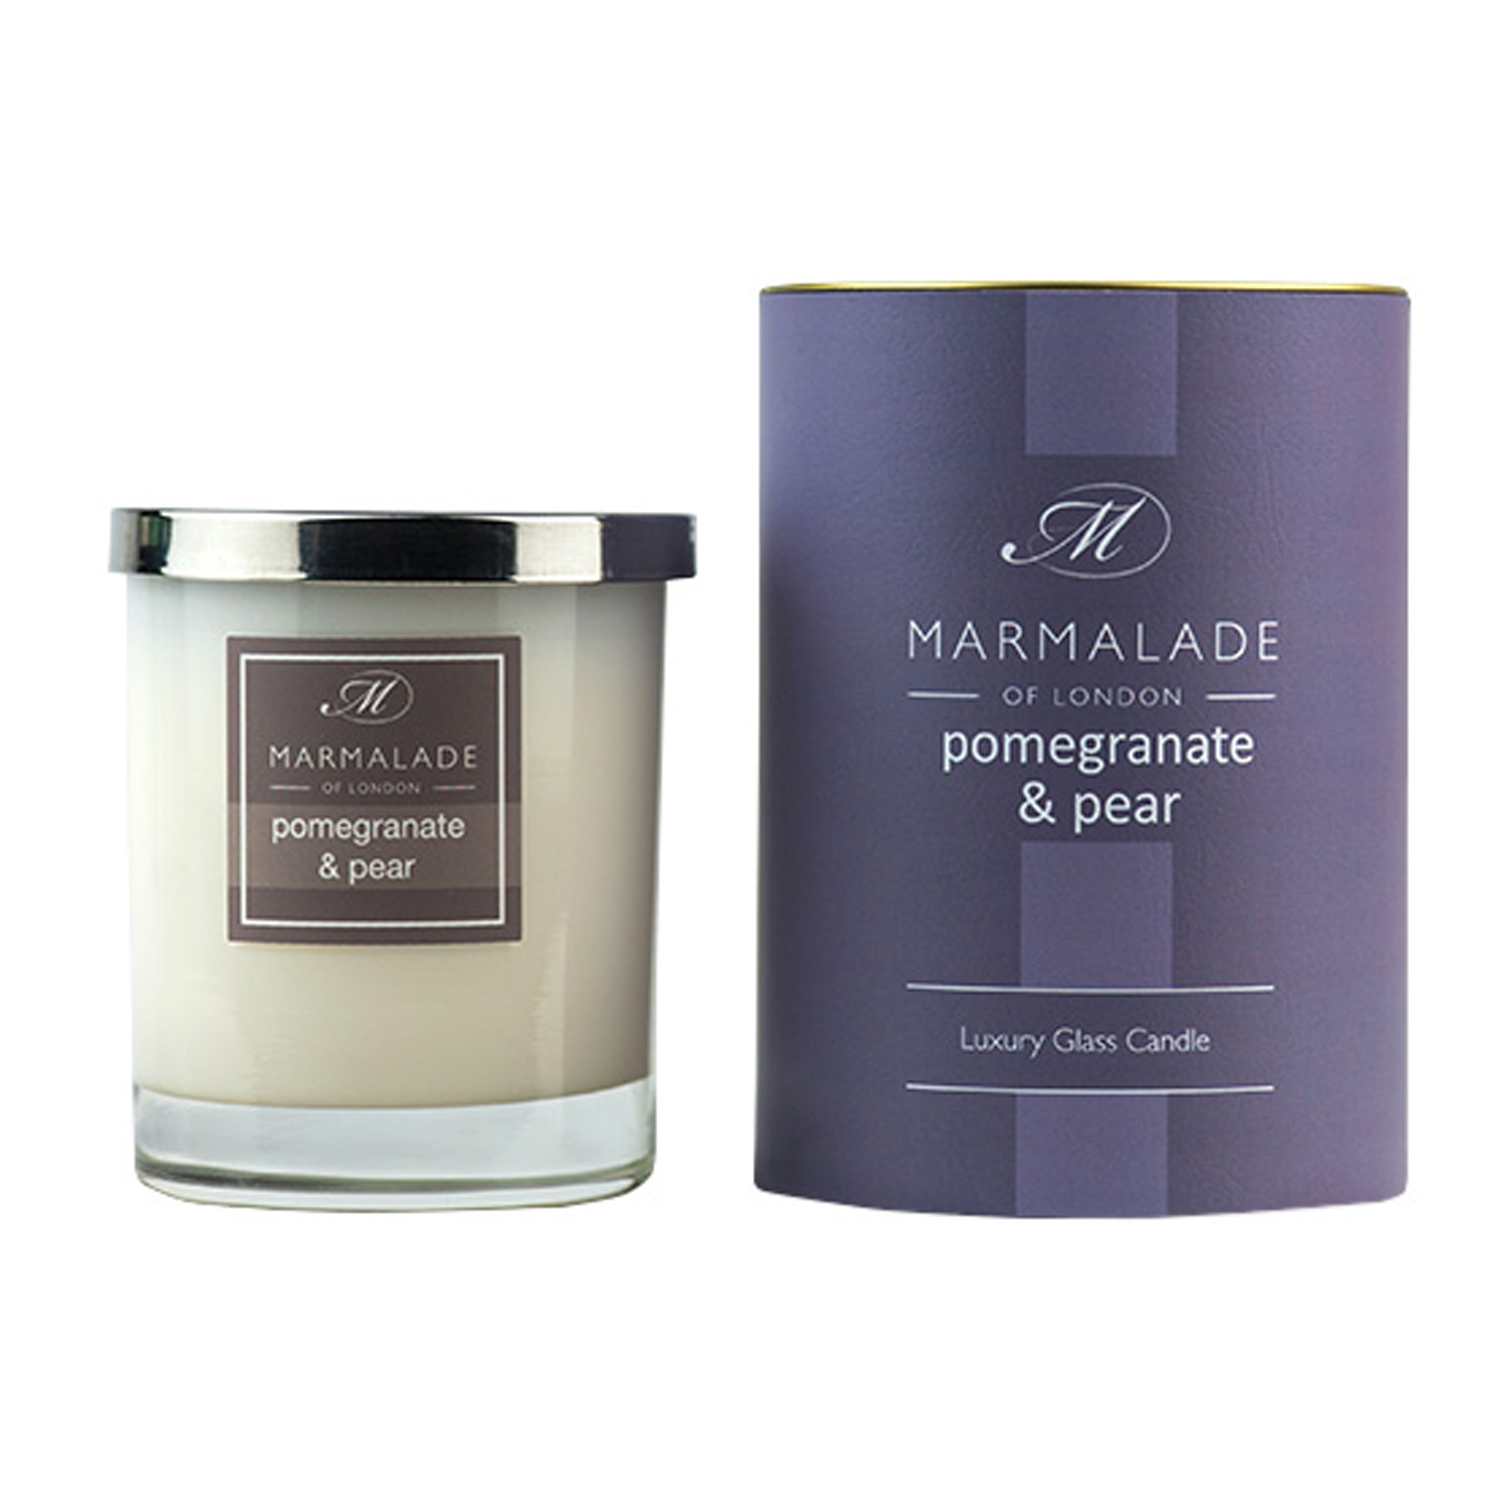 00174 Pomegranate and pear glass candle